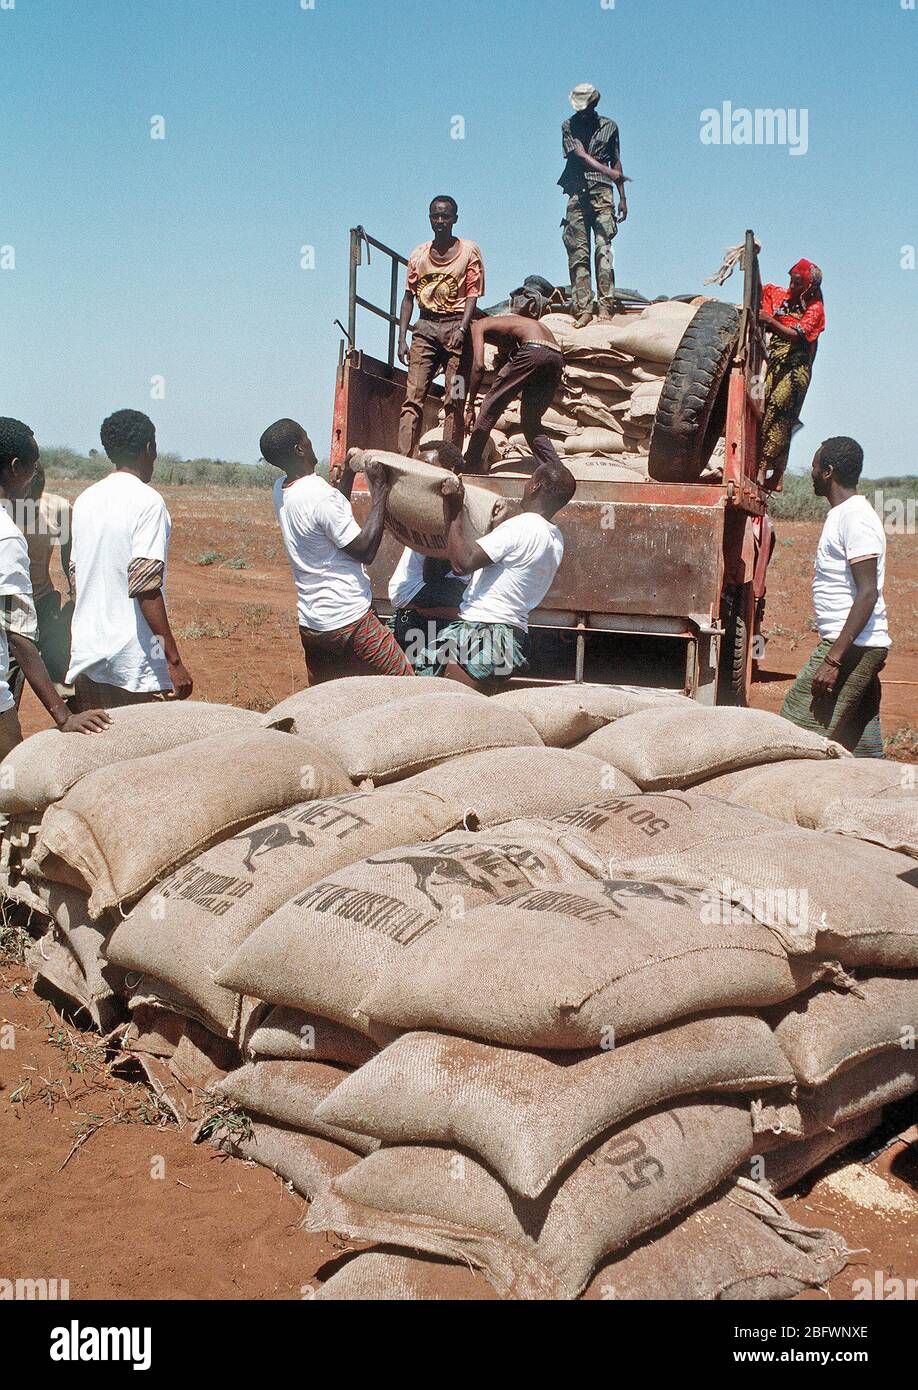 1993 - Men from the village of Maleel stack bags of wheat as a Marine Heavy Helicopter Squadron 363 (HMH-363) CH-53D Sea Stallion helicopter prepaers to drop another load during the multinational relief effort OPERATION RESTORE HOPE. Stock Photo